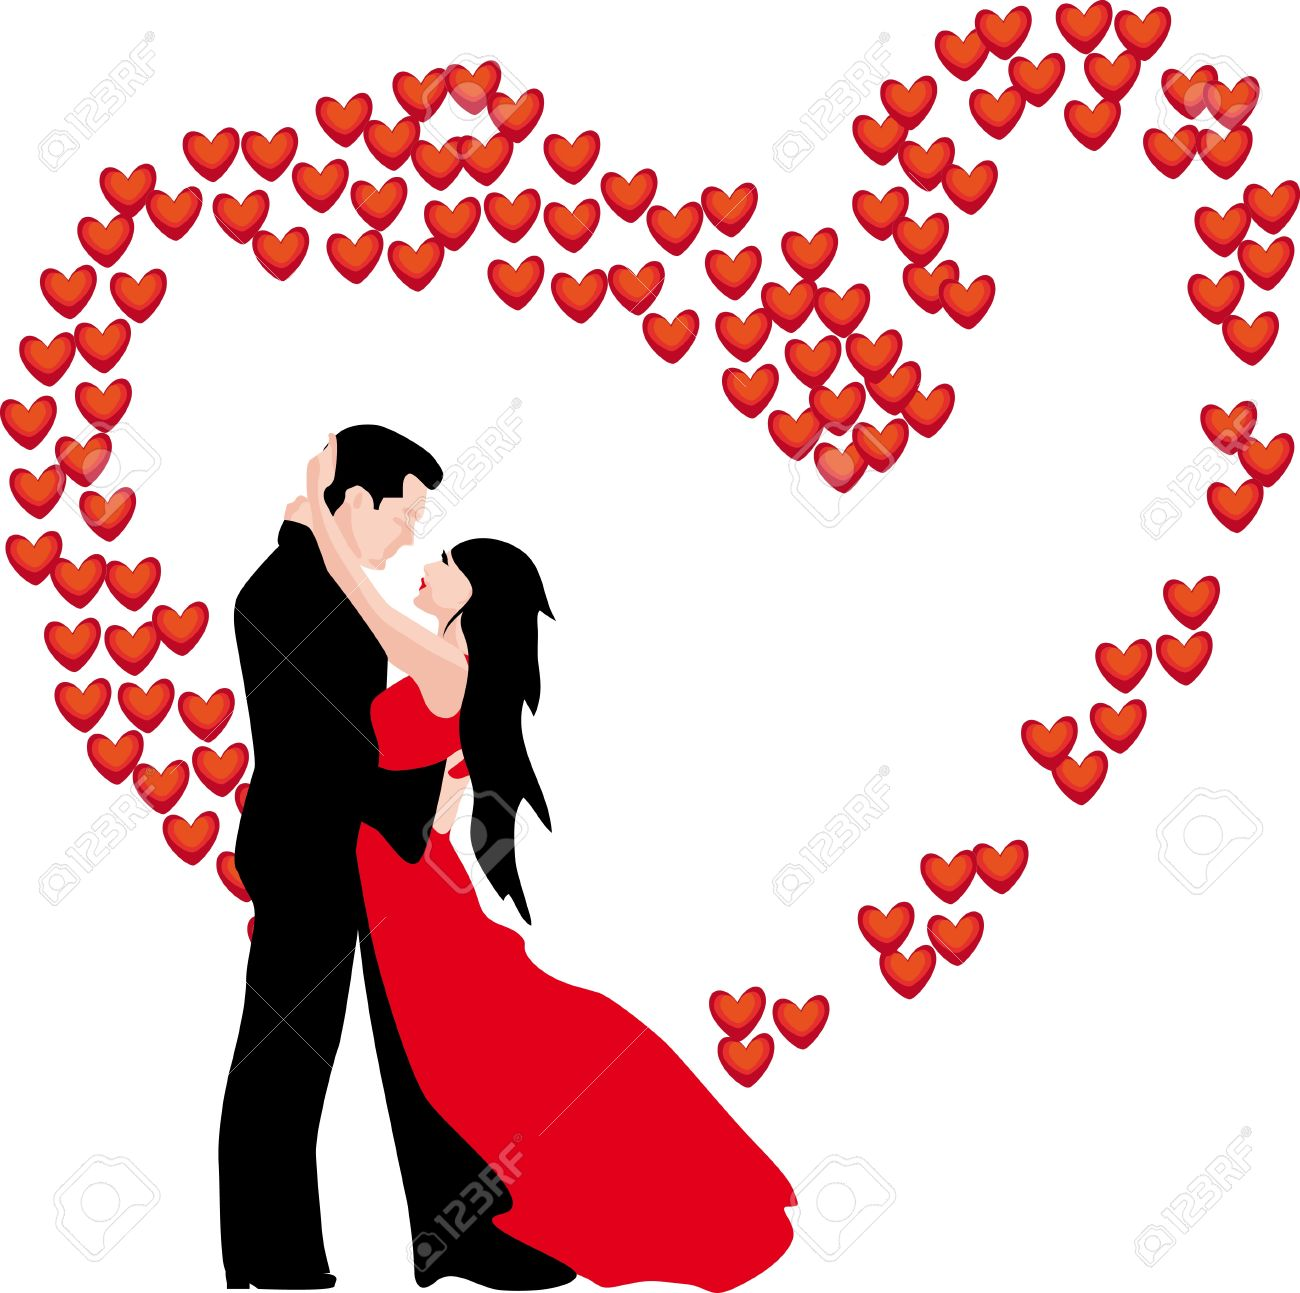 Bride and groom clipart wedding.